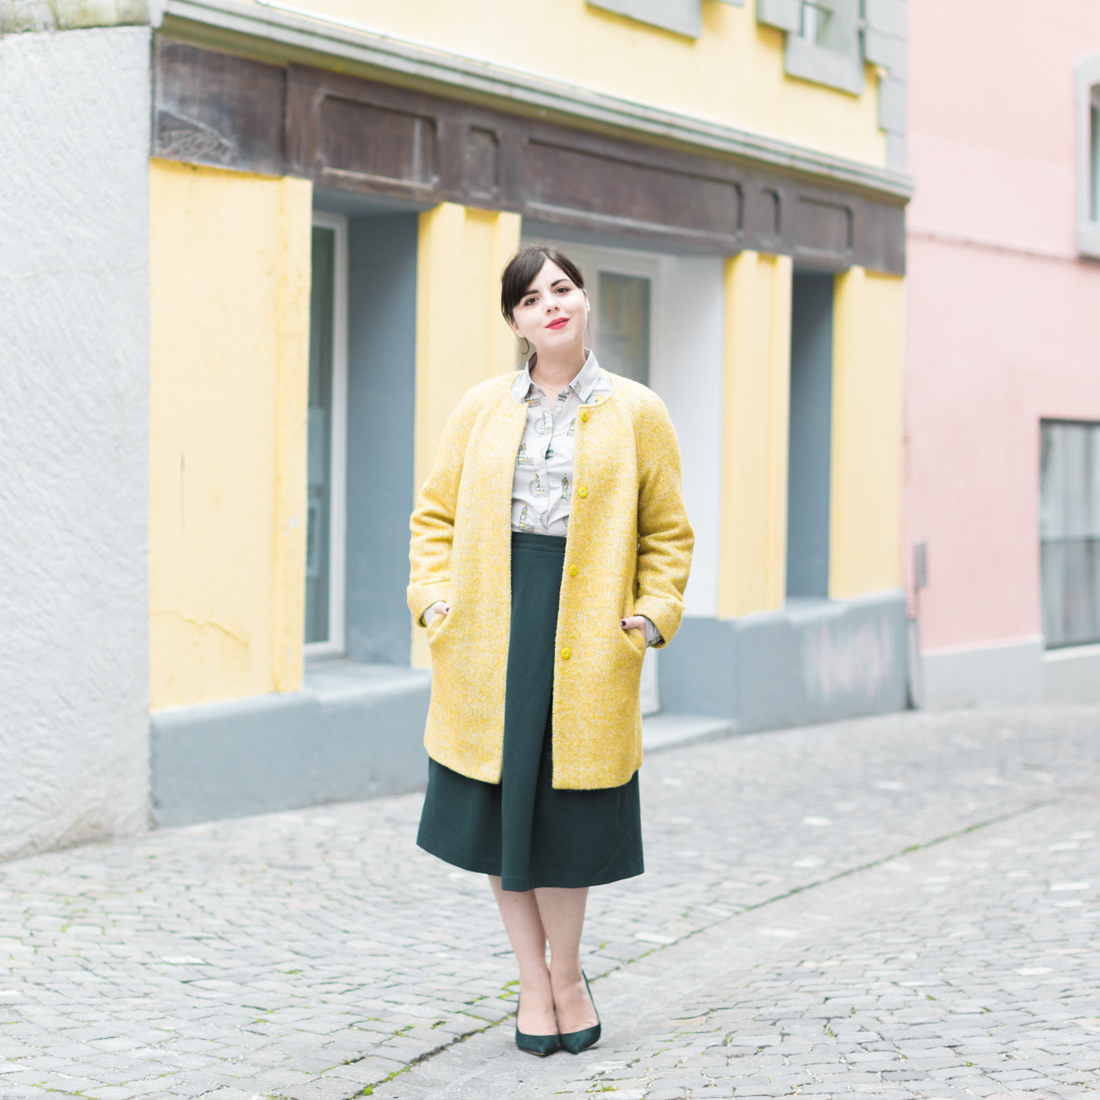 boden yellow coat london print shirt copyright Pauline paulinefashionblog.com 5 à langlaise